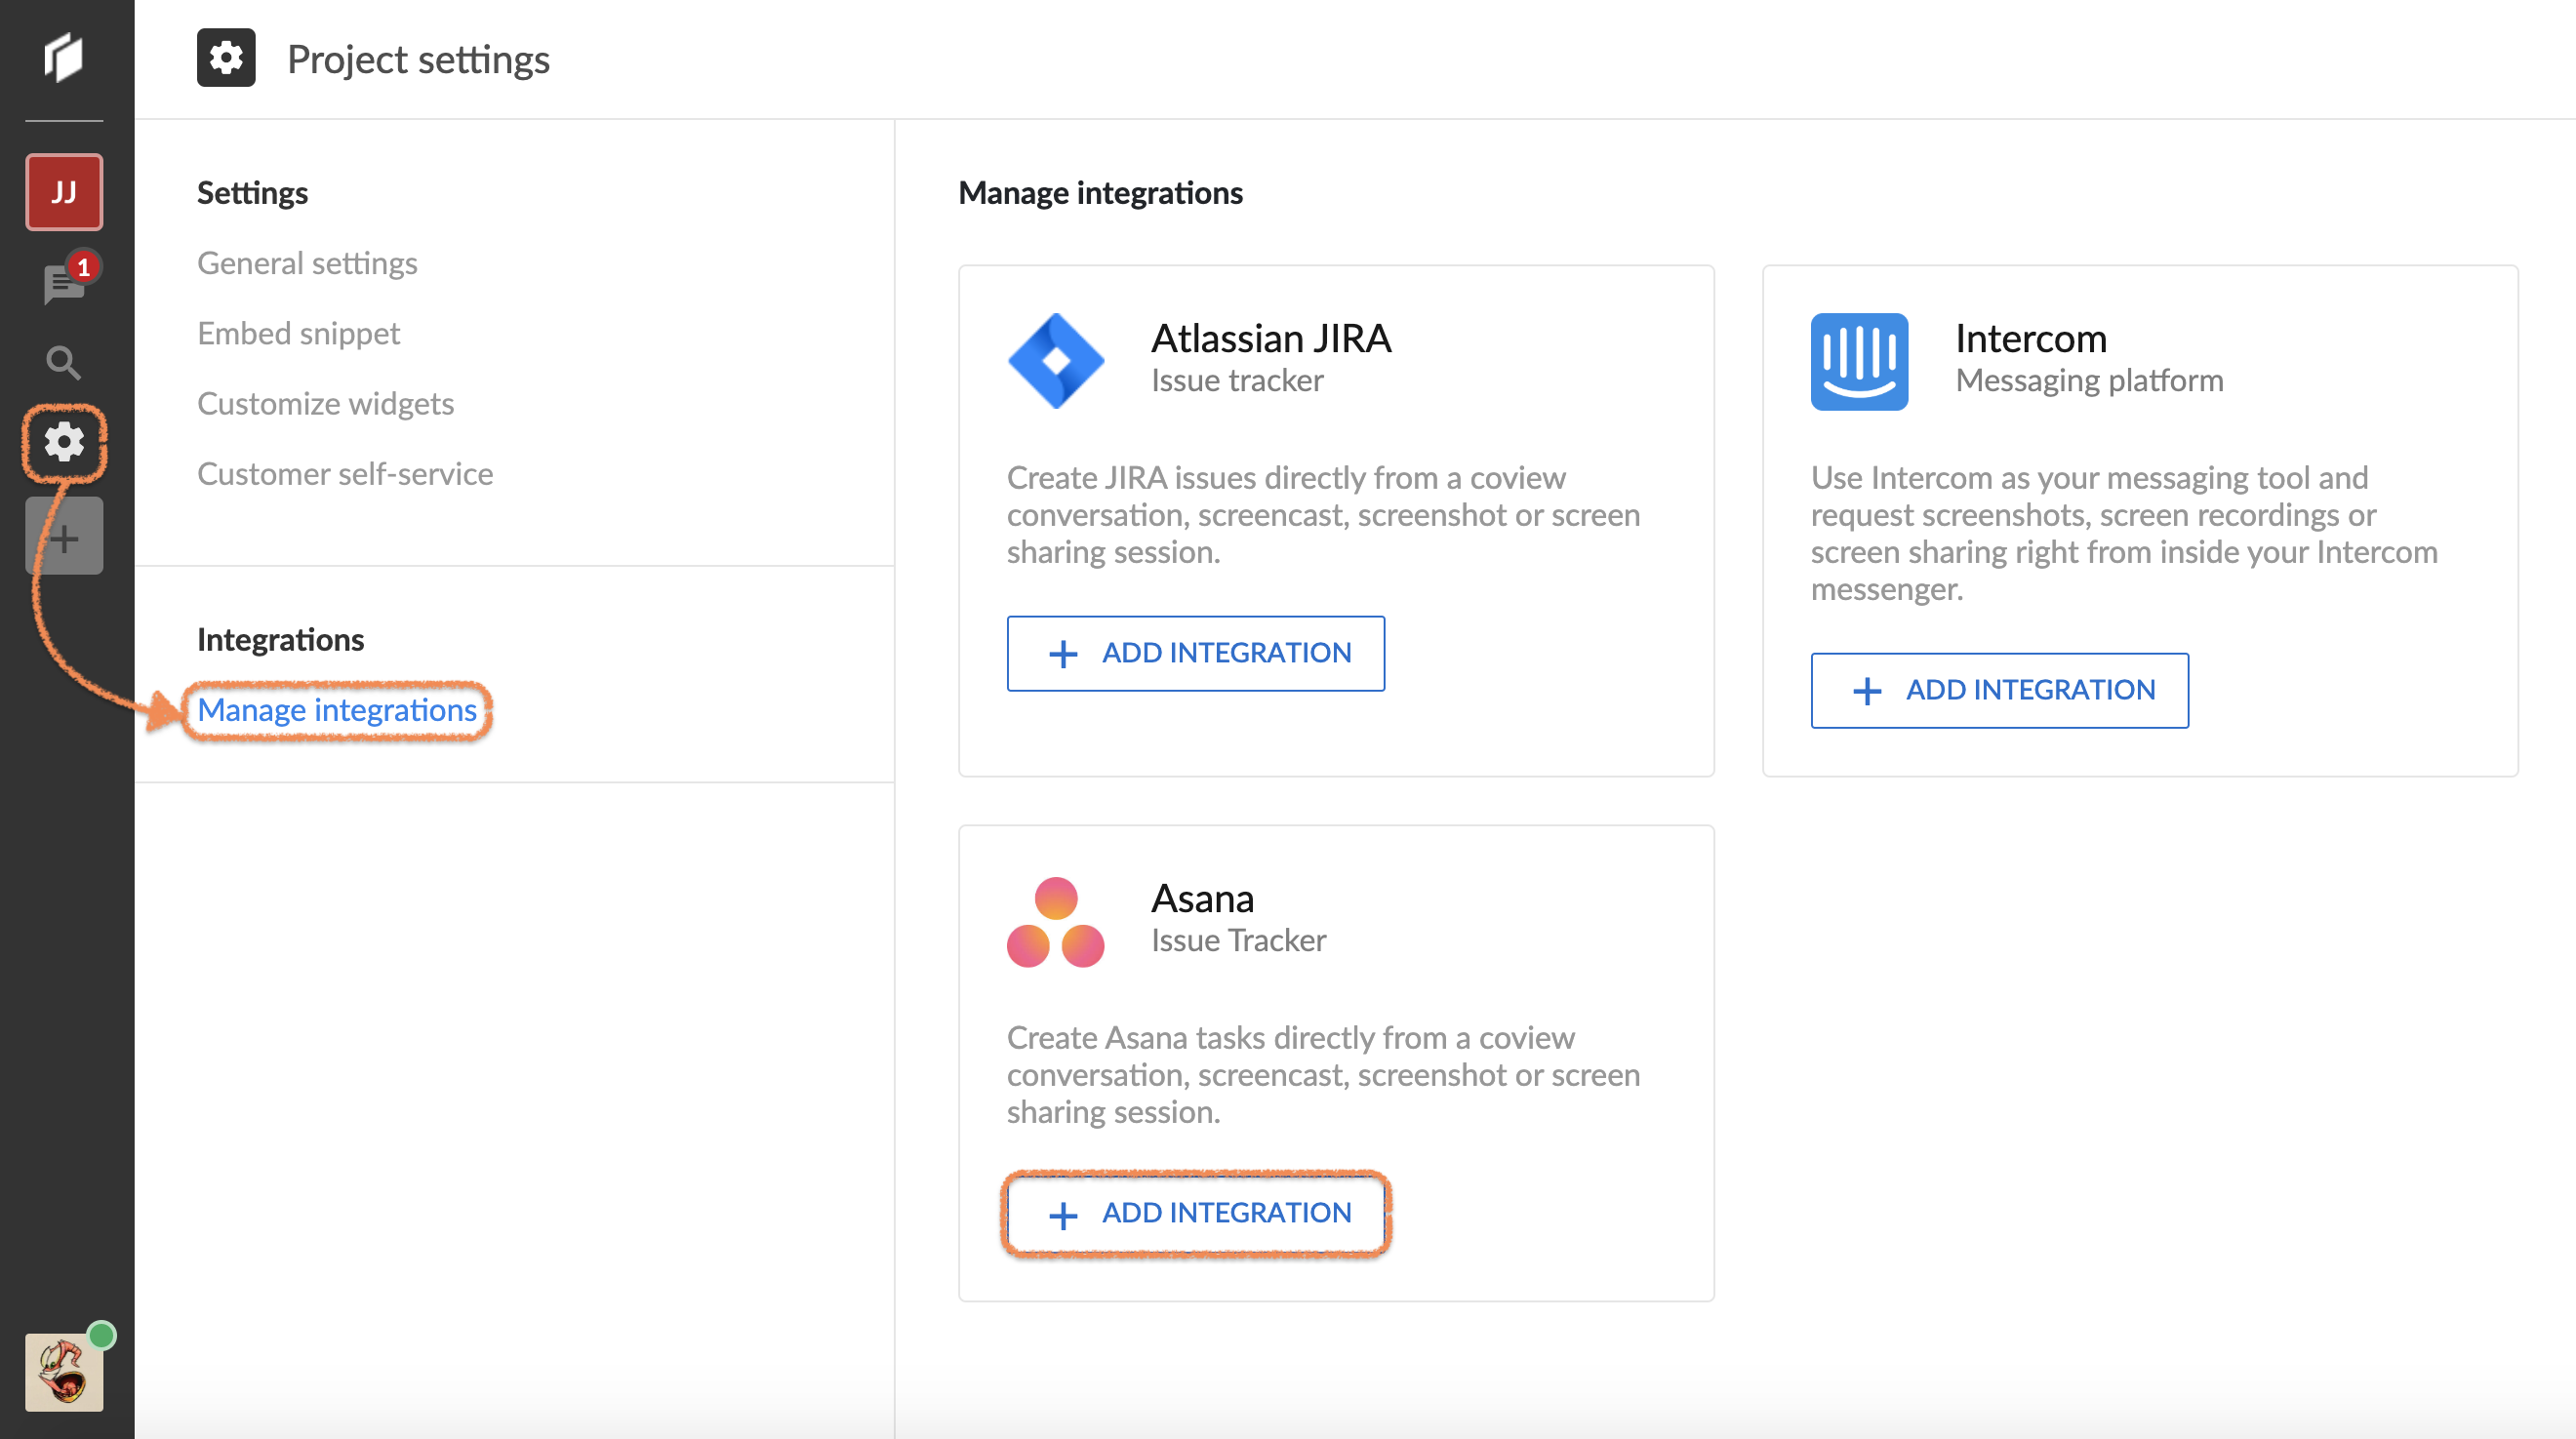 Choosing Asana from the list of available integrations.